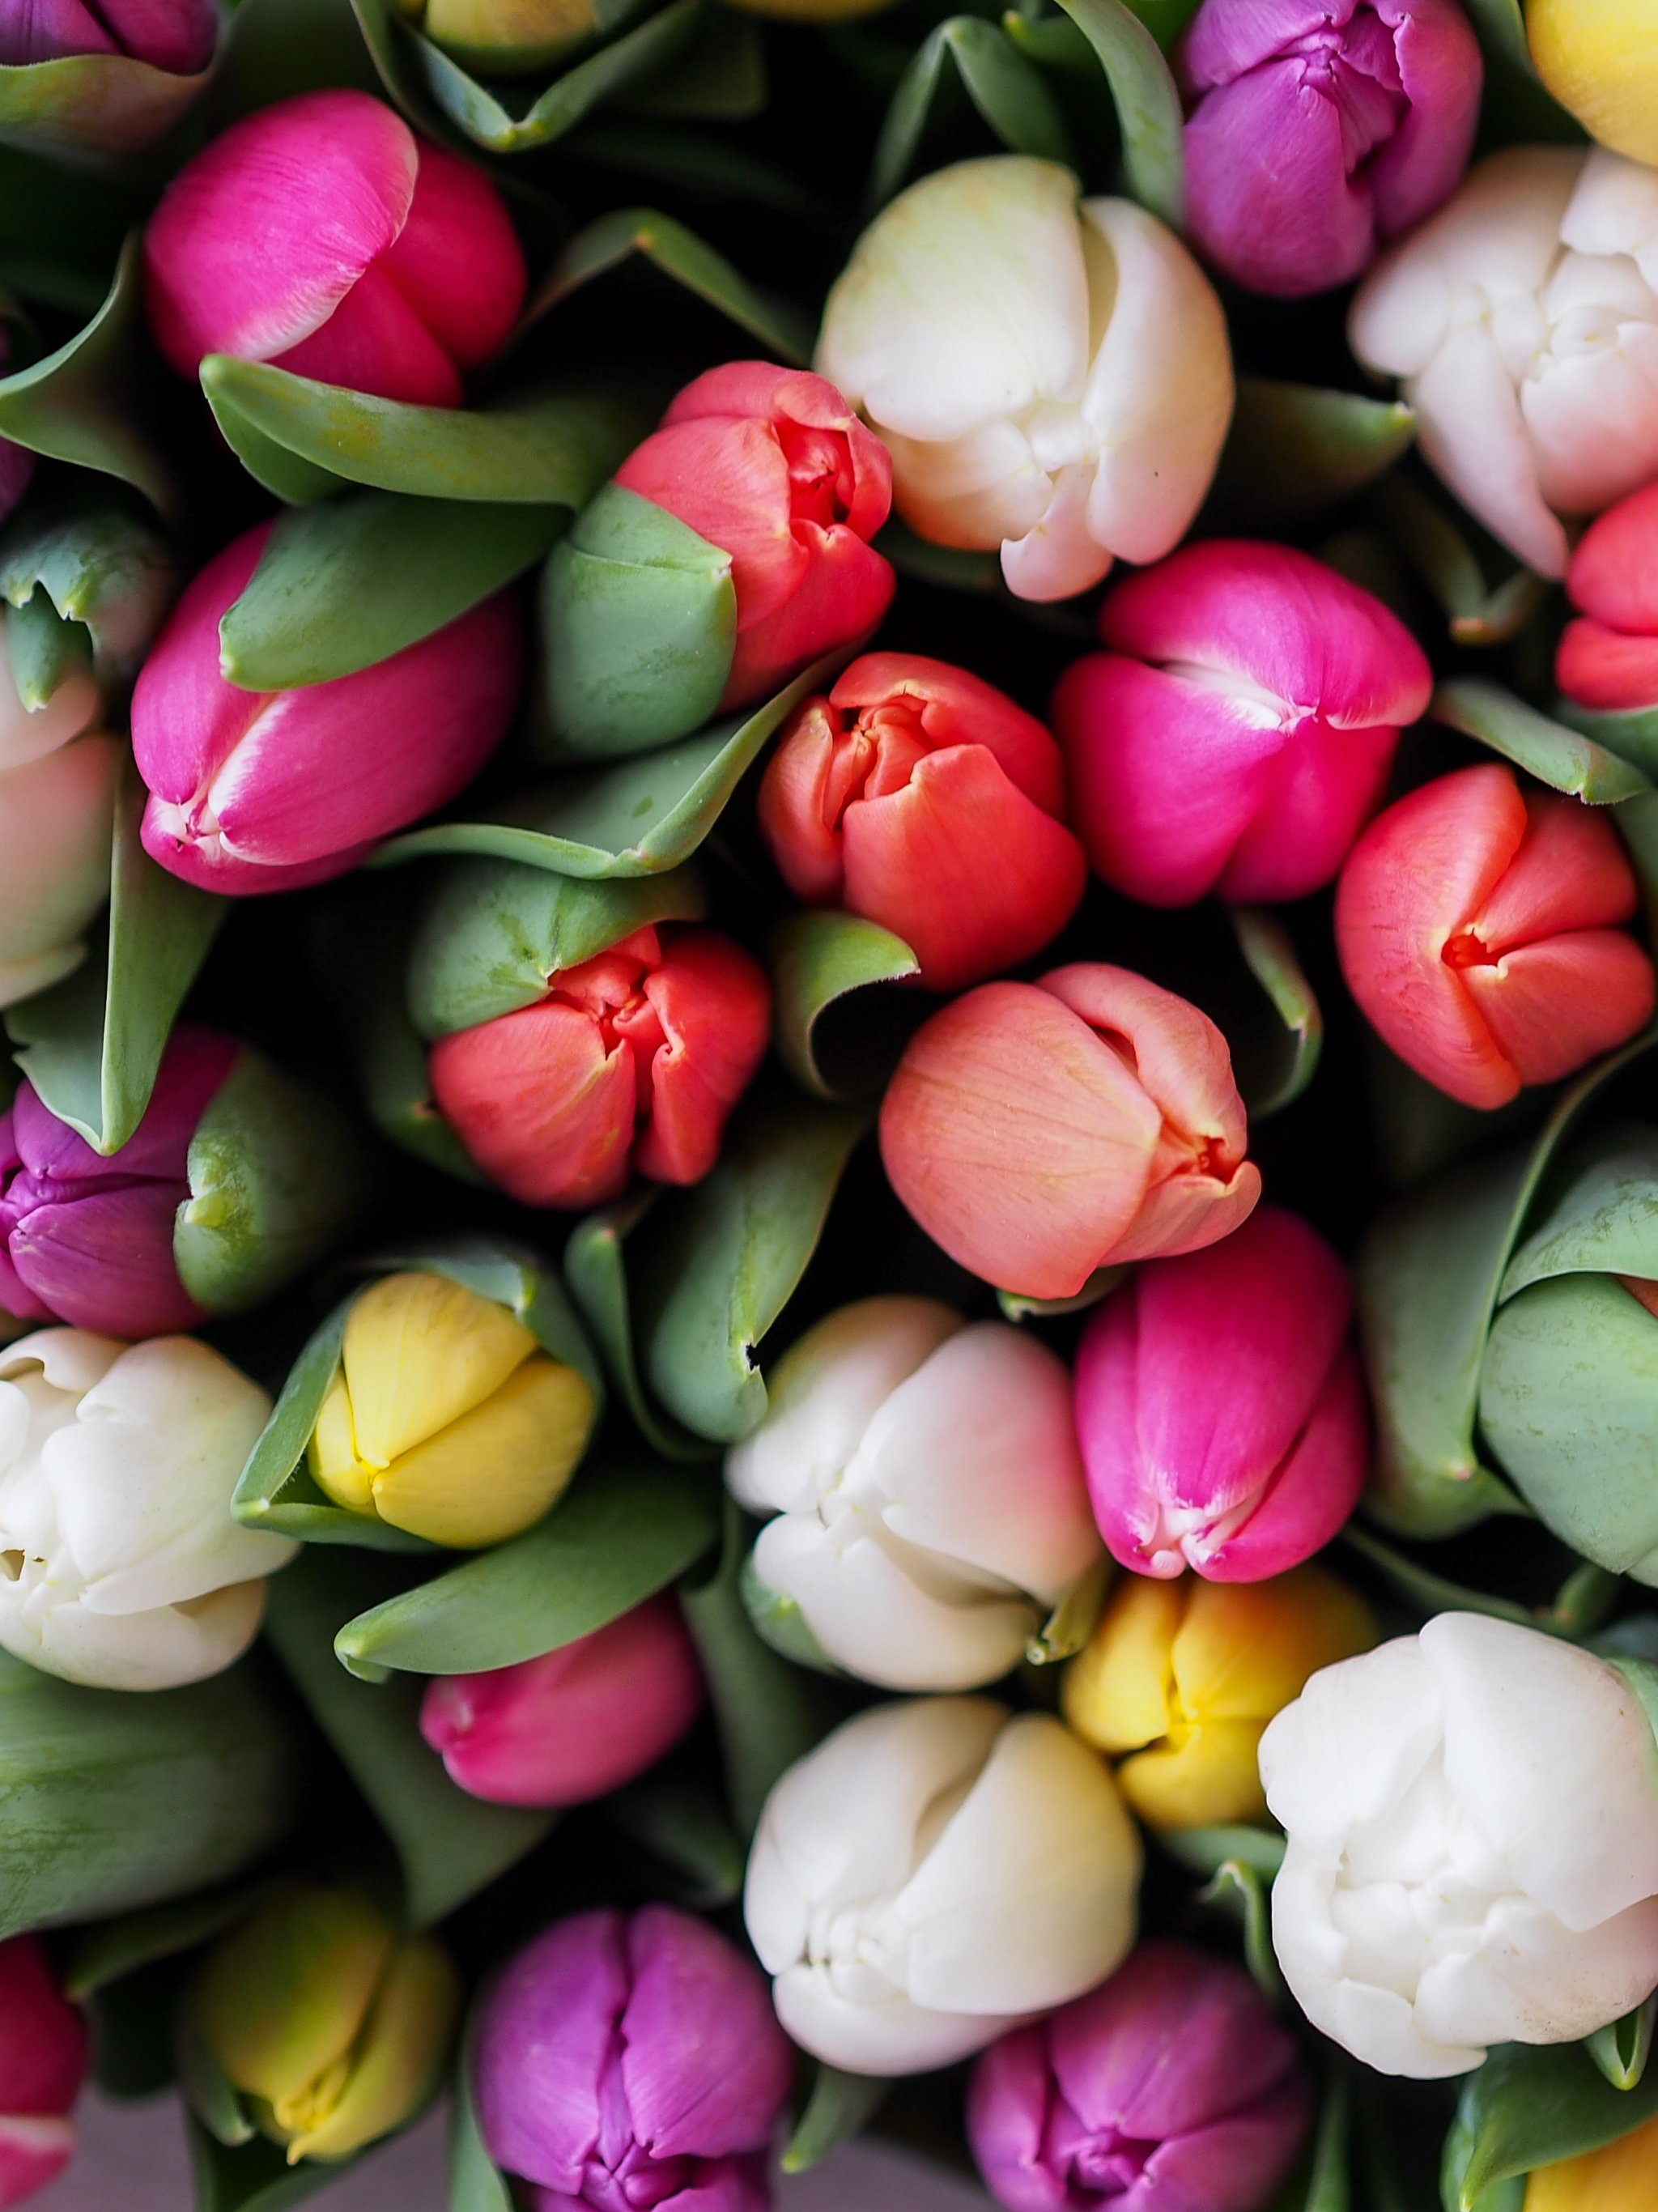 Tulips Bouquet Wallpaper , iPhone, Android \u0026 Desktop Backgrounds